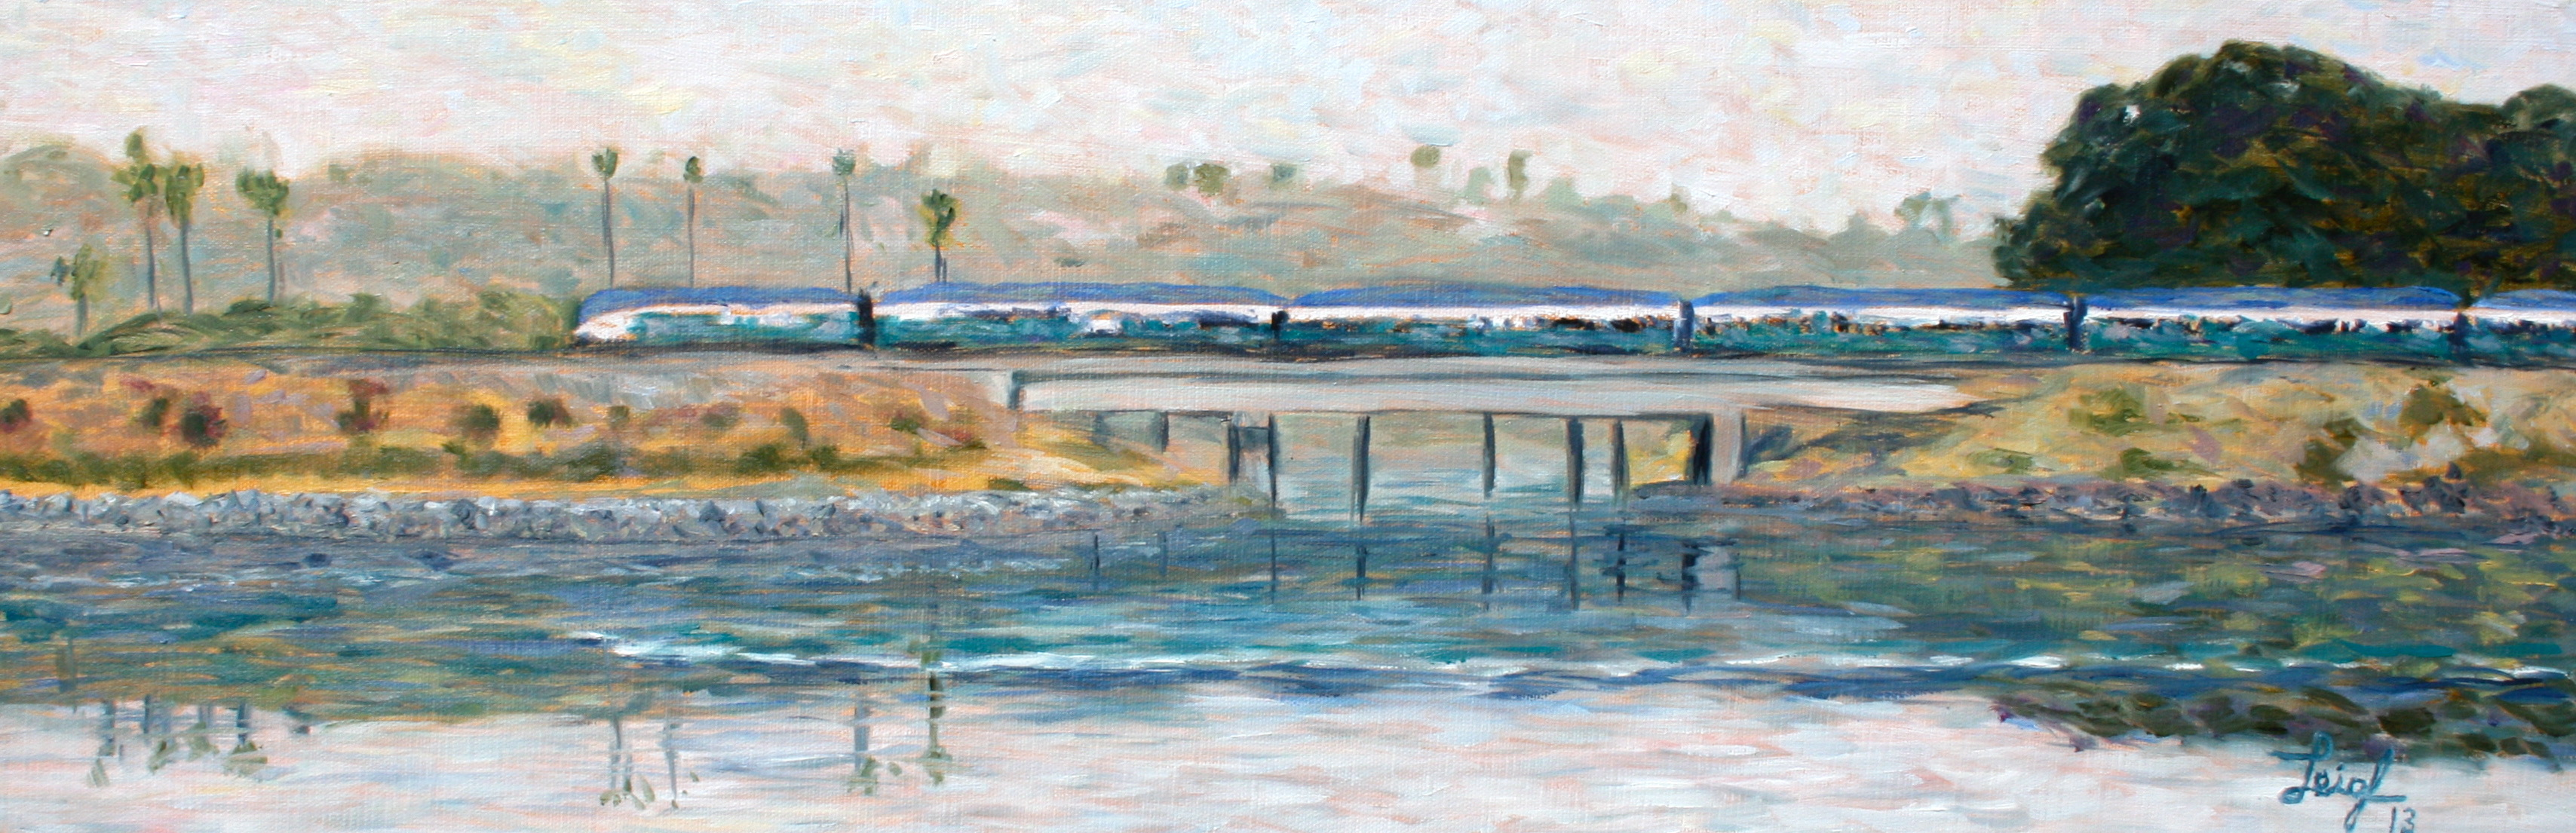 Coaster over Agua Hedionda  ~   Howard Anton Duncan, Oceanside, CA 2013 • 30 x 10